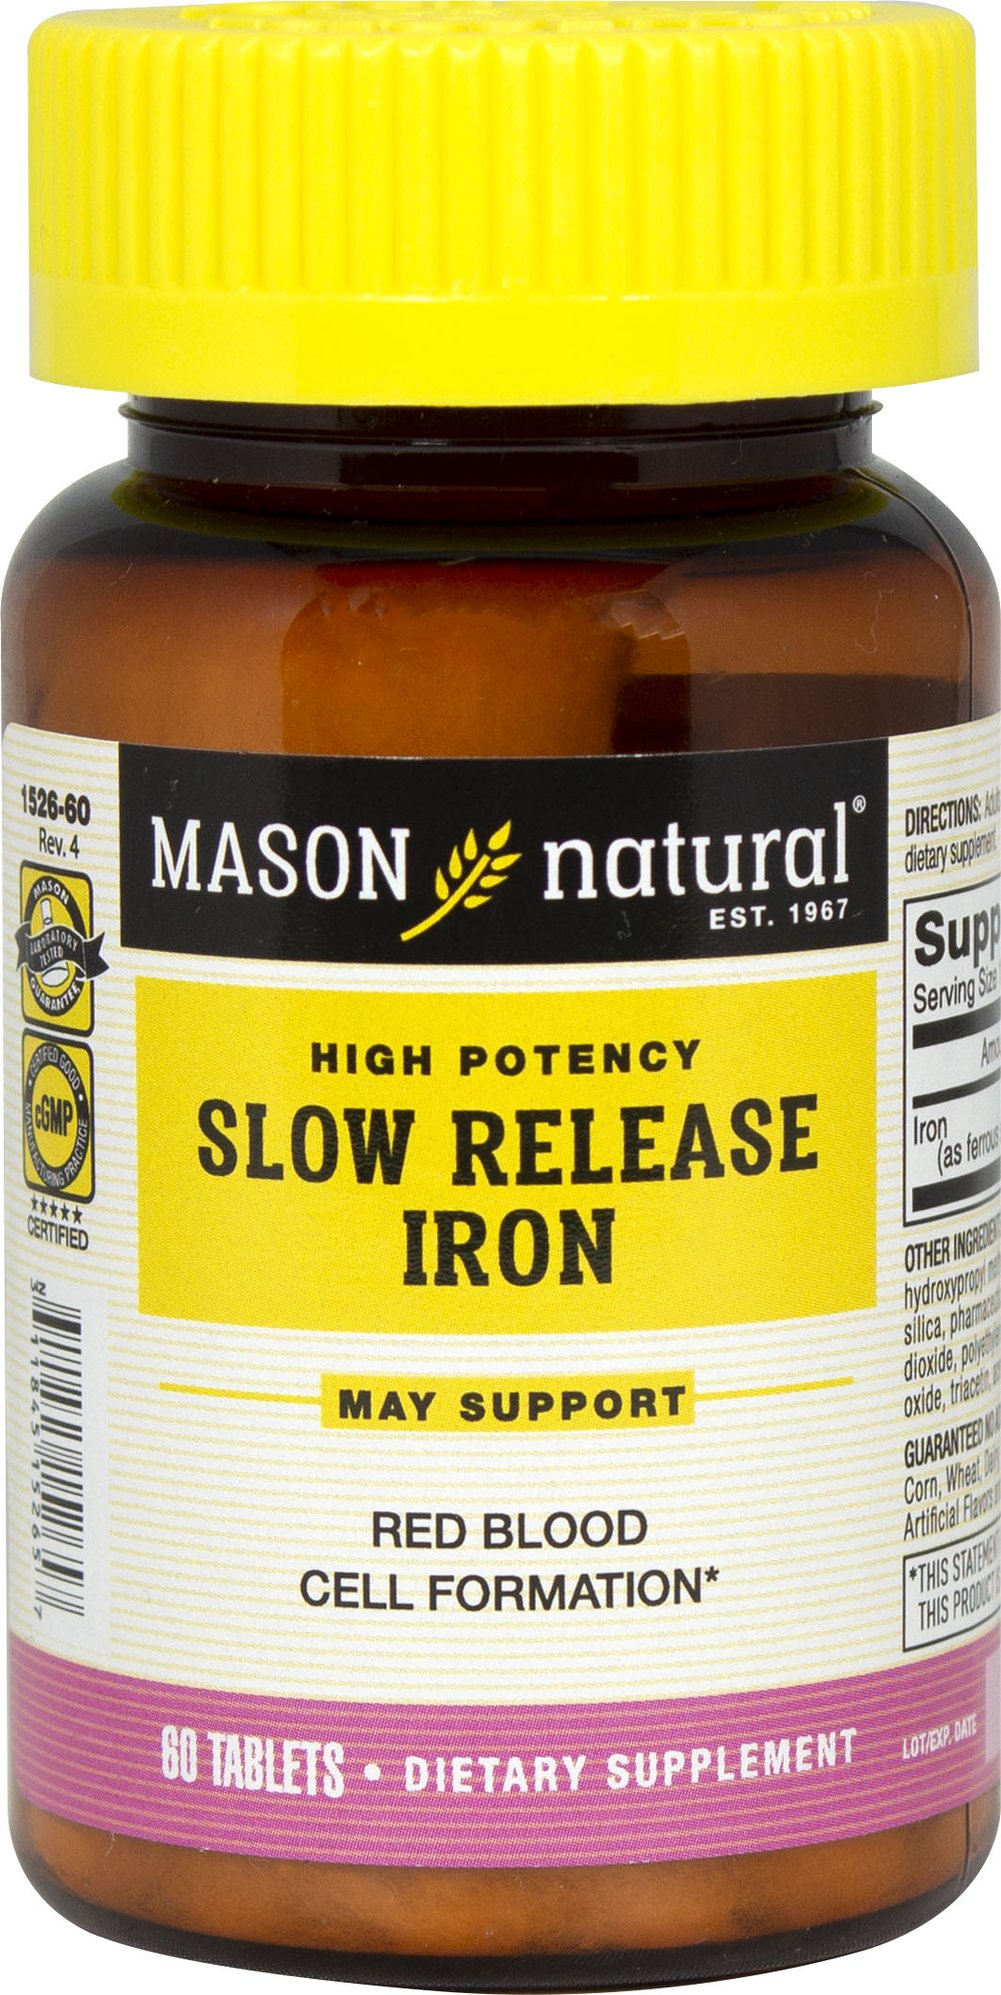 Iron 50 mg Slow Release <p><strong>From the Manufacturer's Label:</strong></p><p>Slow Release Iron 50 mg is manufactured by Mason Naturals.</p> 60 Tablets 50 mg $5.99